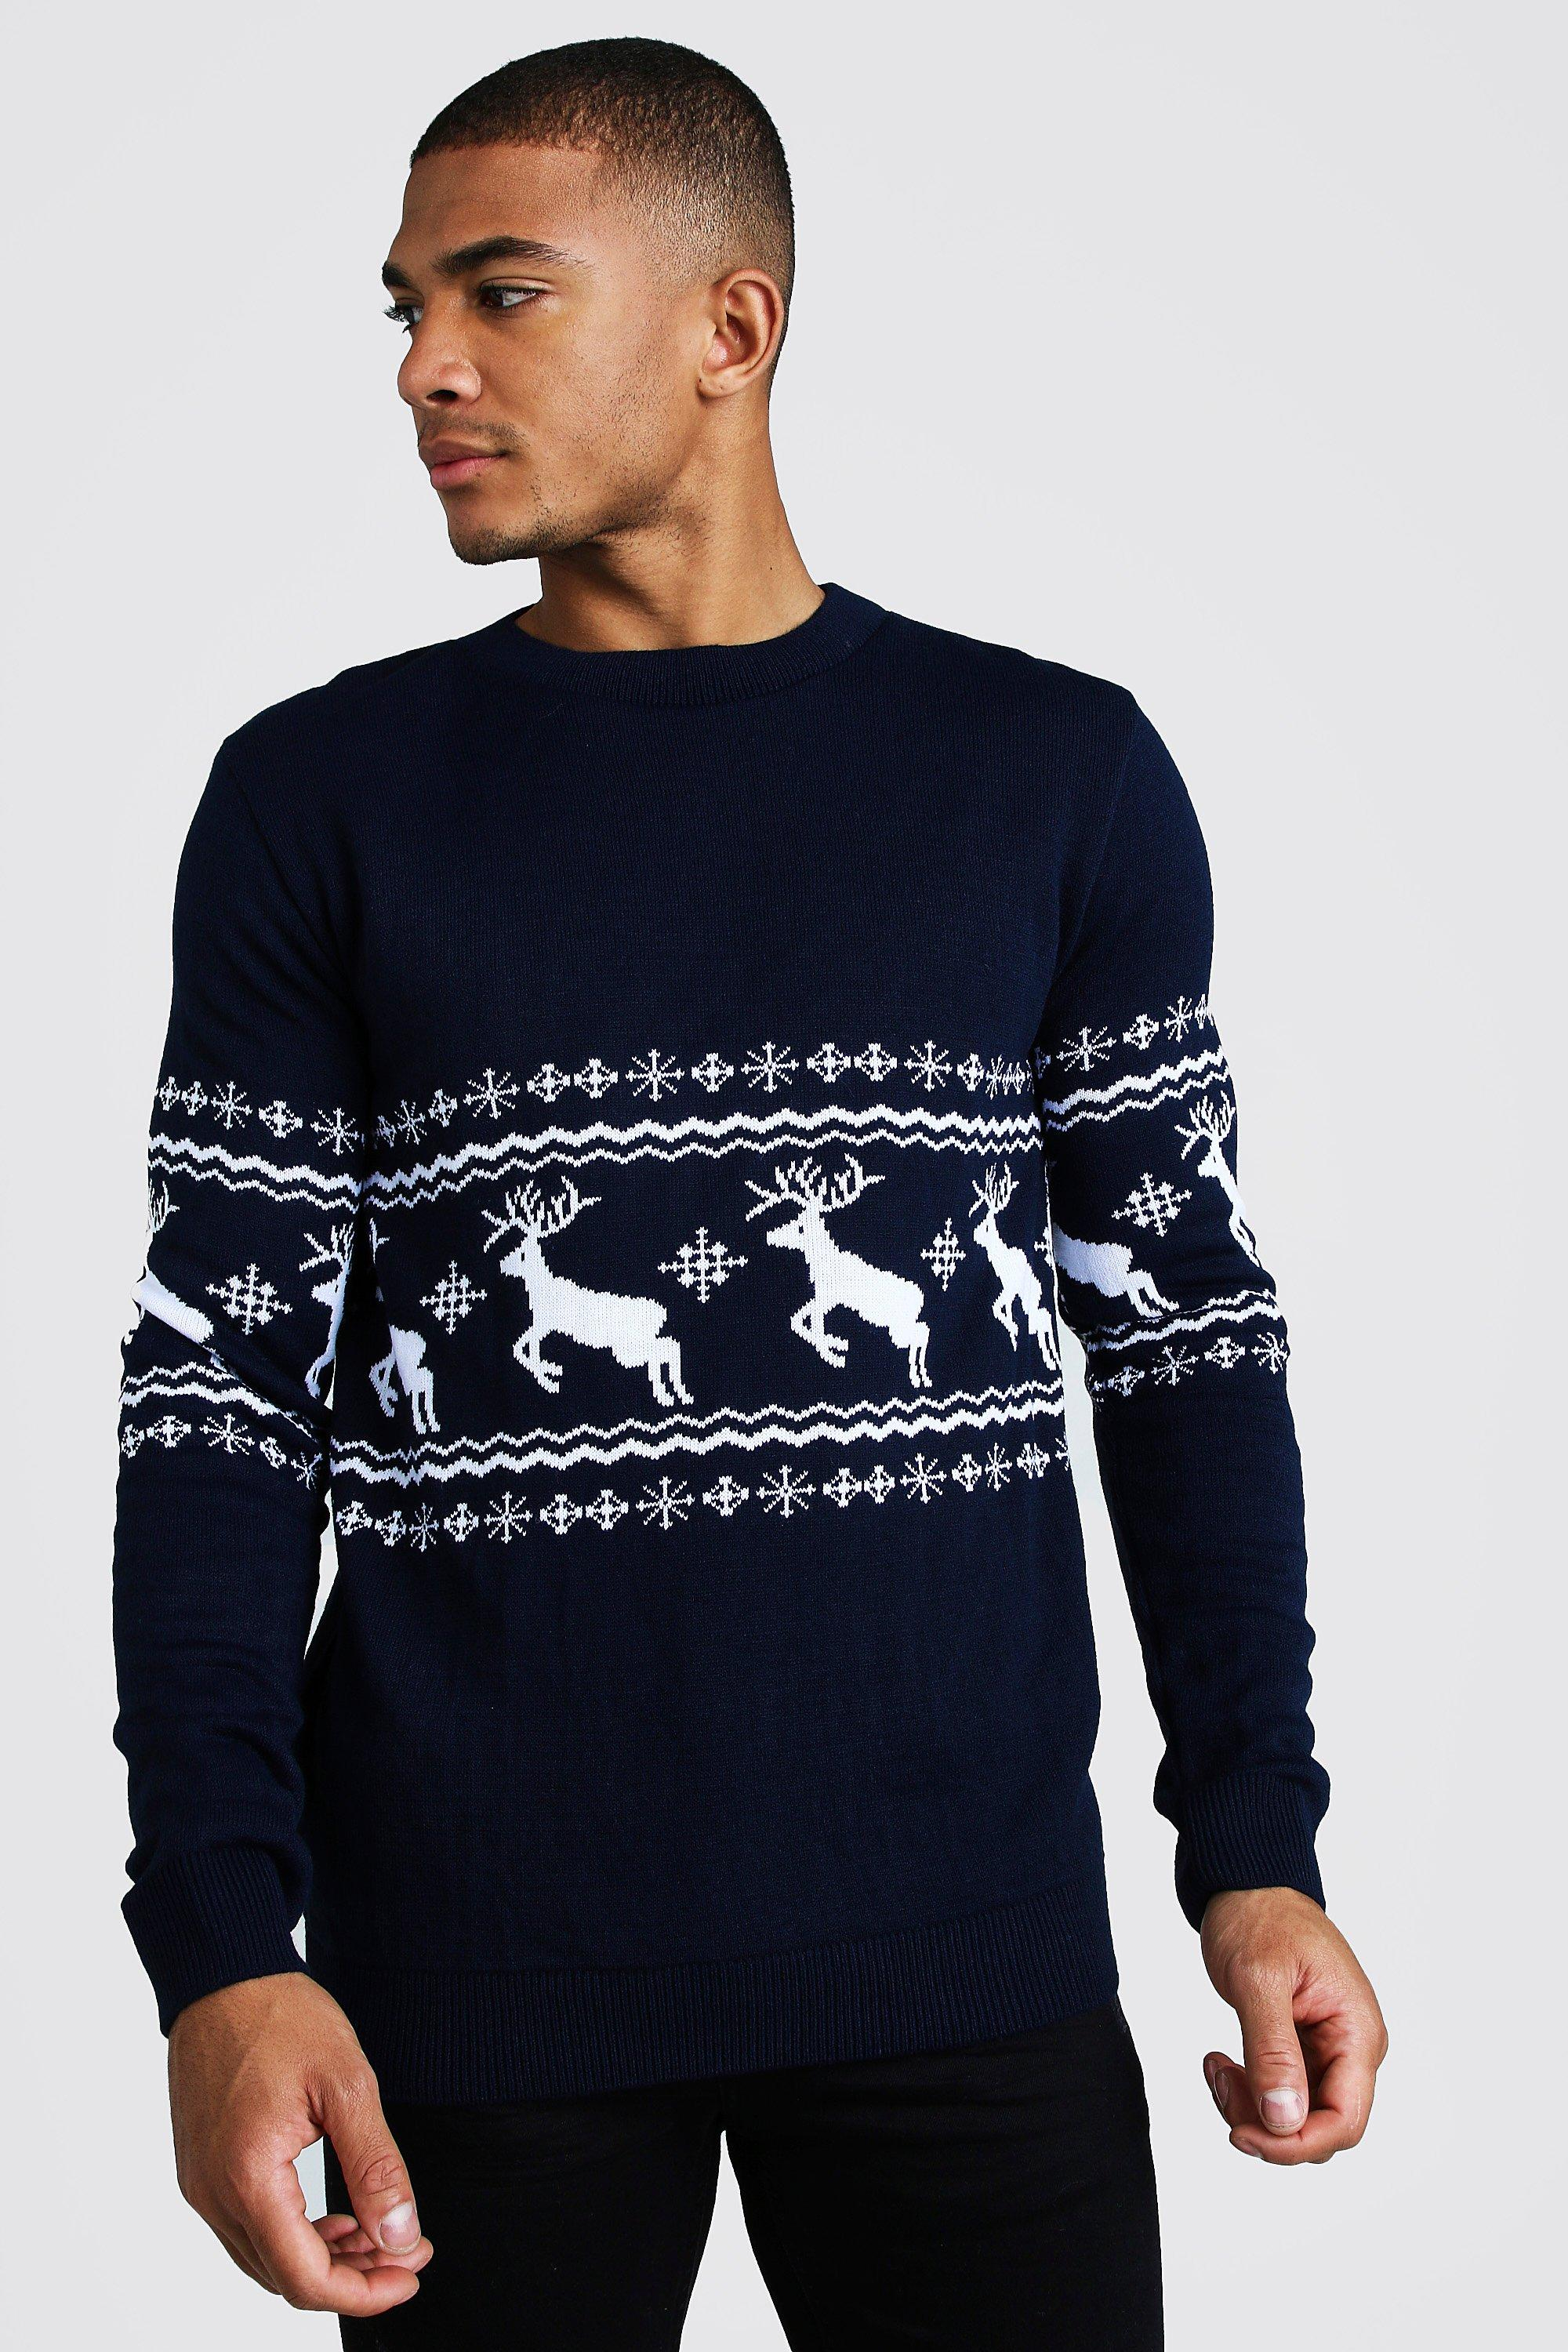 1940s Style Mens Shirts, Sweaters, Vests Mens Muscle Fit Reindeer Fairisle Christmas Sweater - Navy $32.00 AT vintagedancer.com